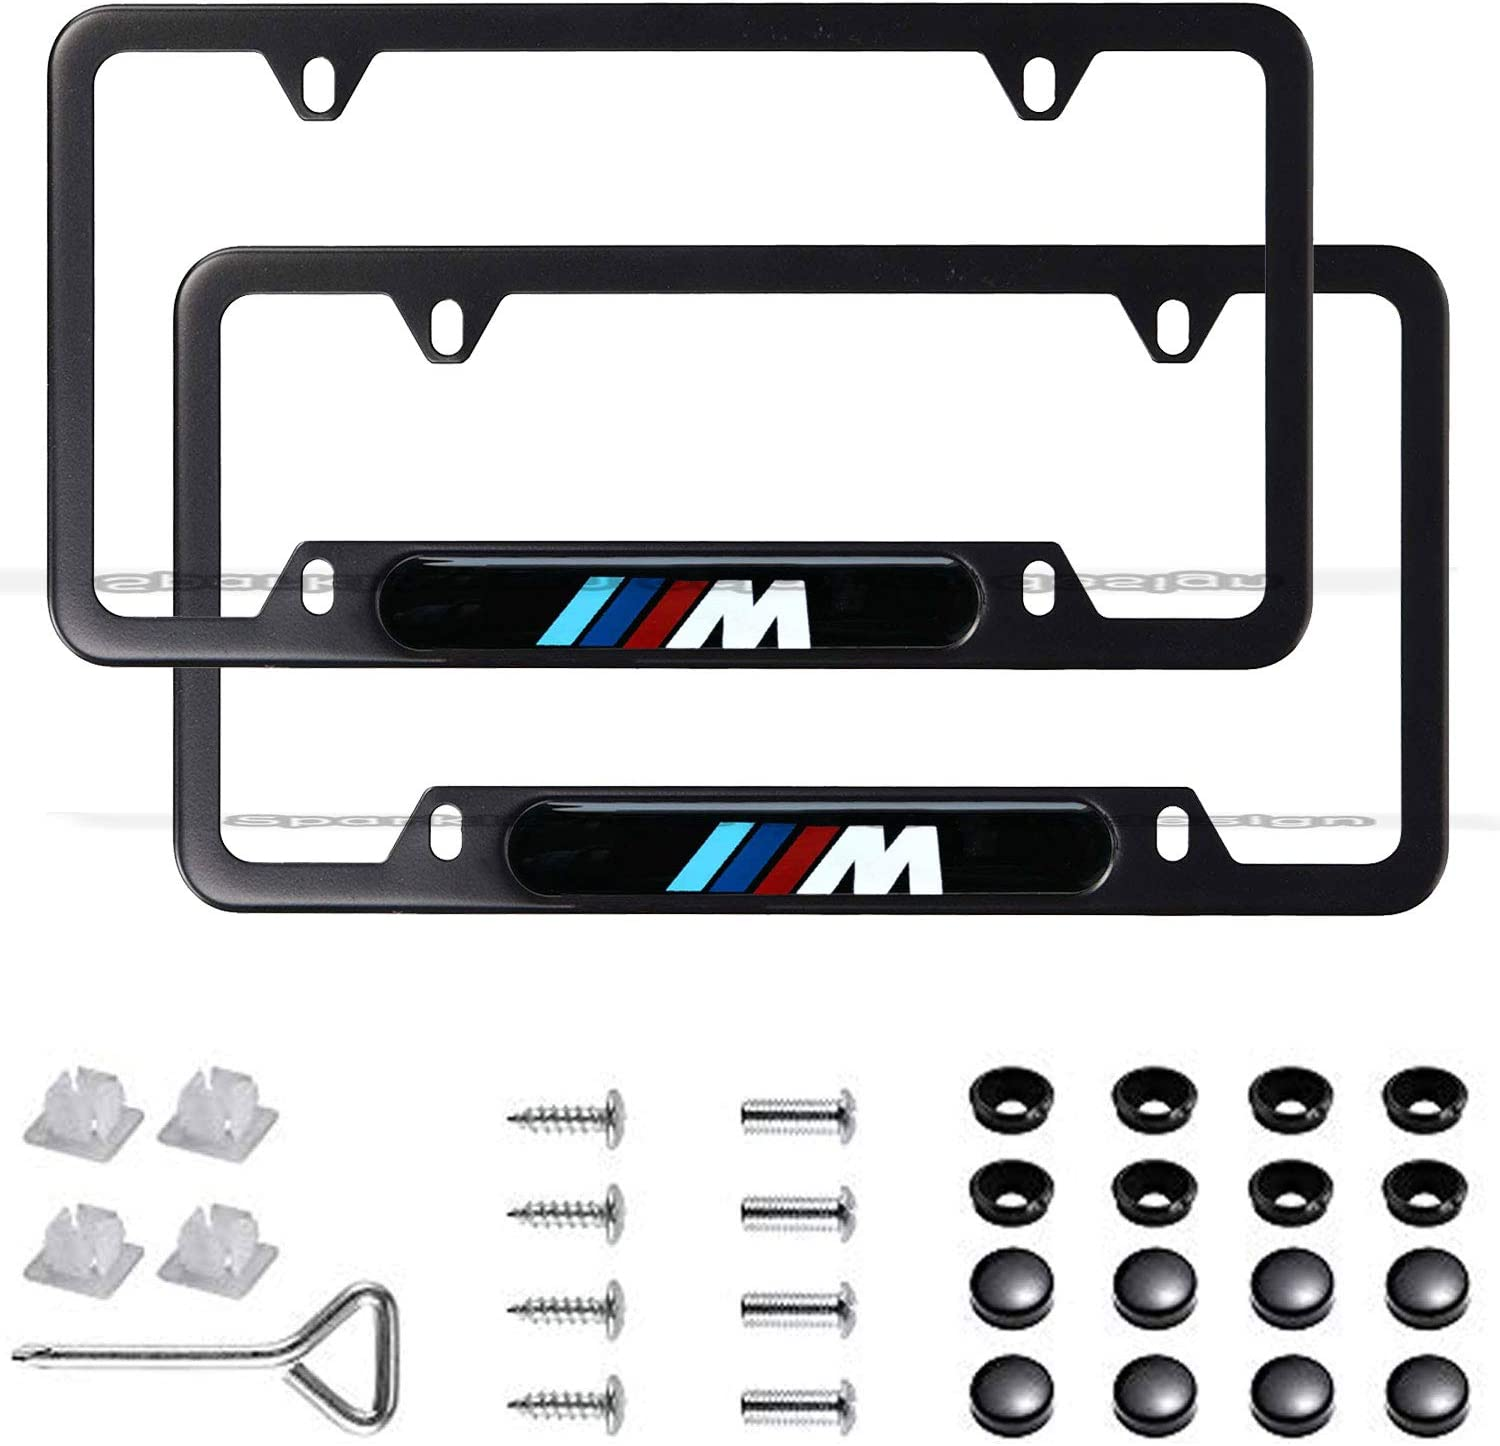 2pcs Newest Matte Aluminum Alloy M Logo License Plate Frame, with Screw Caps Cover Set Suit,Applicable to US Standard car License Frame,for BMW M.